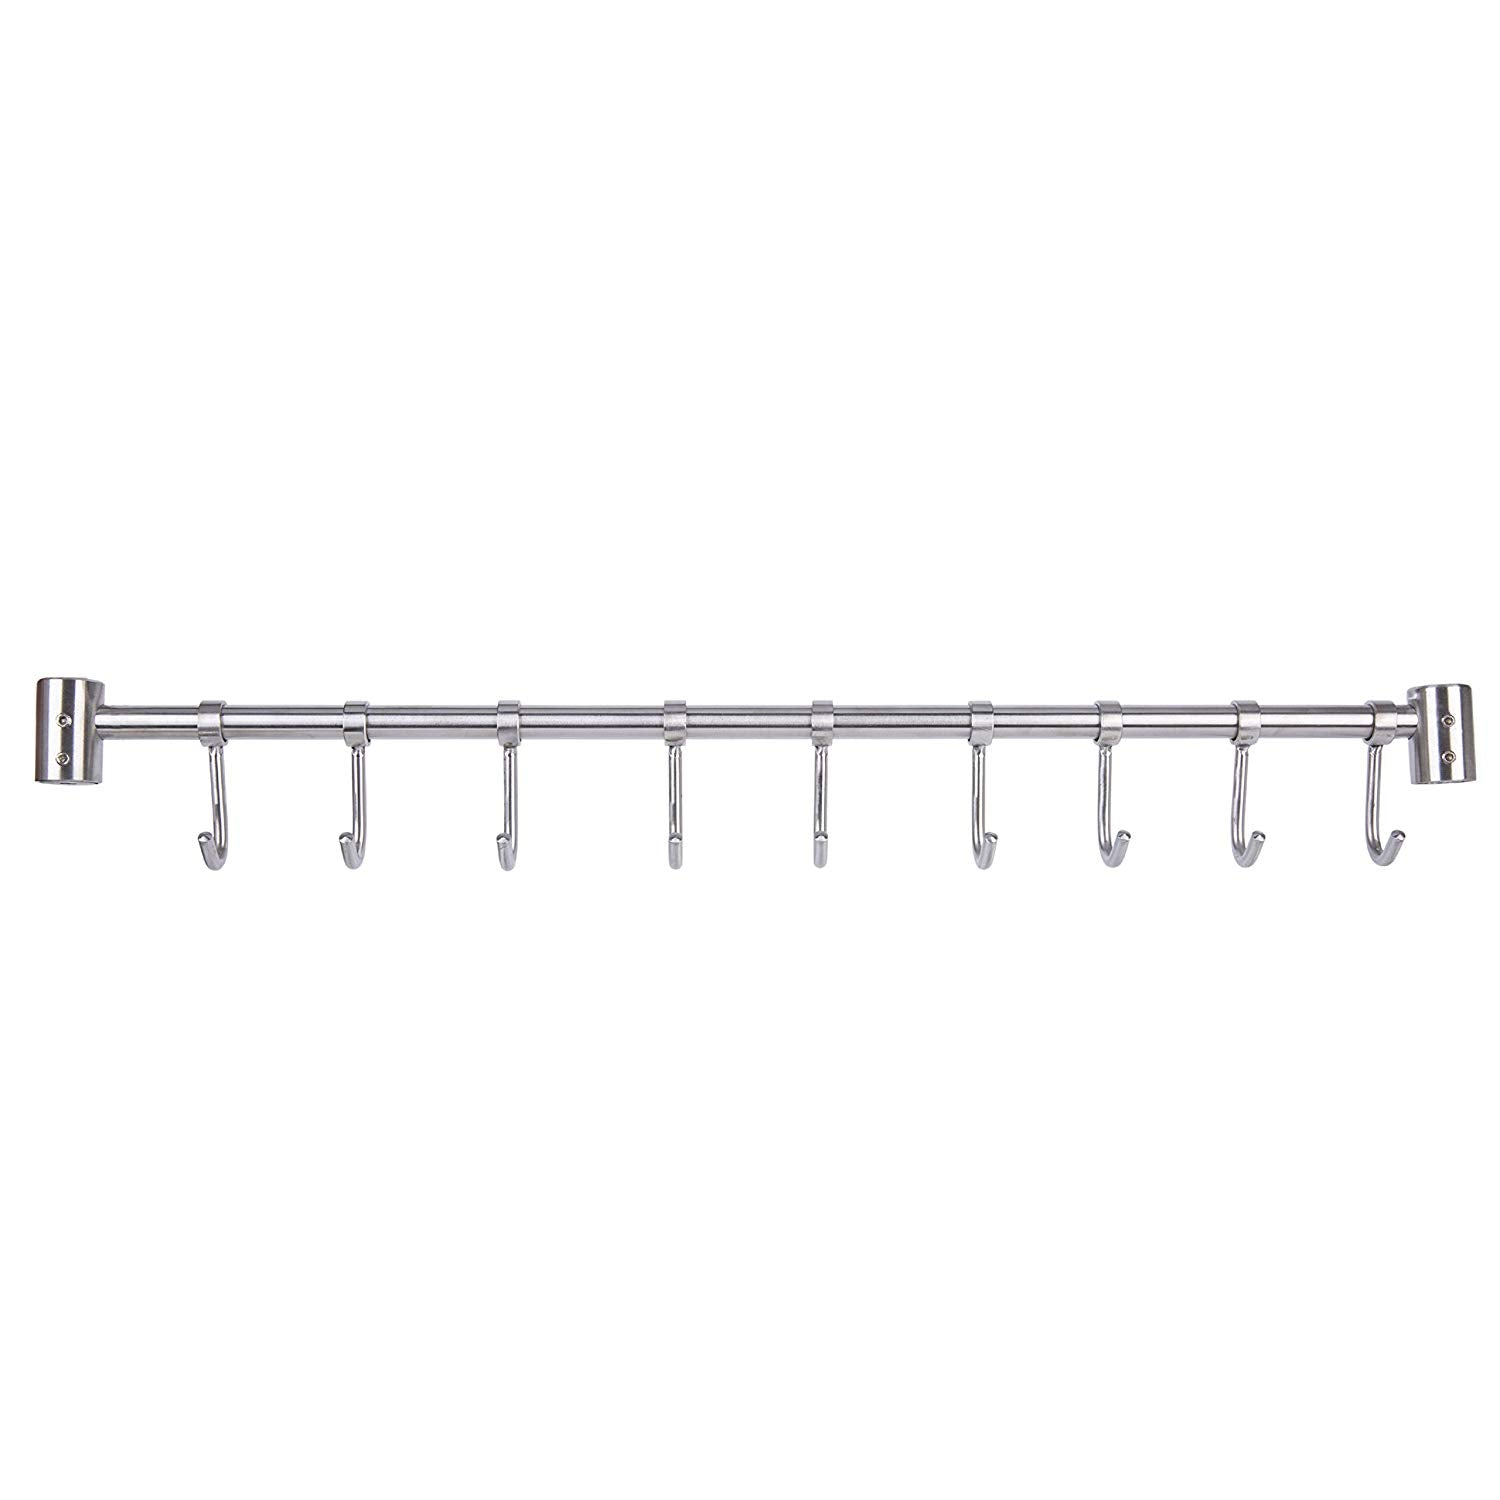 Lebather Kitchen Removable Utensil Rack with Hooks Wall Mount SUS304 Stainless Steel, Brushed Nickel (9 Hooks/19.5 Inch)